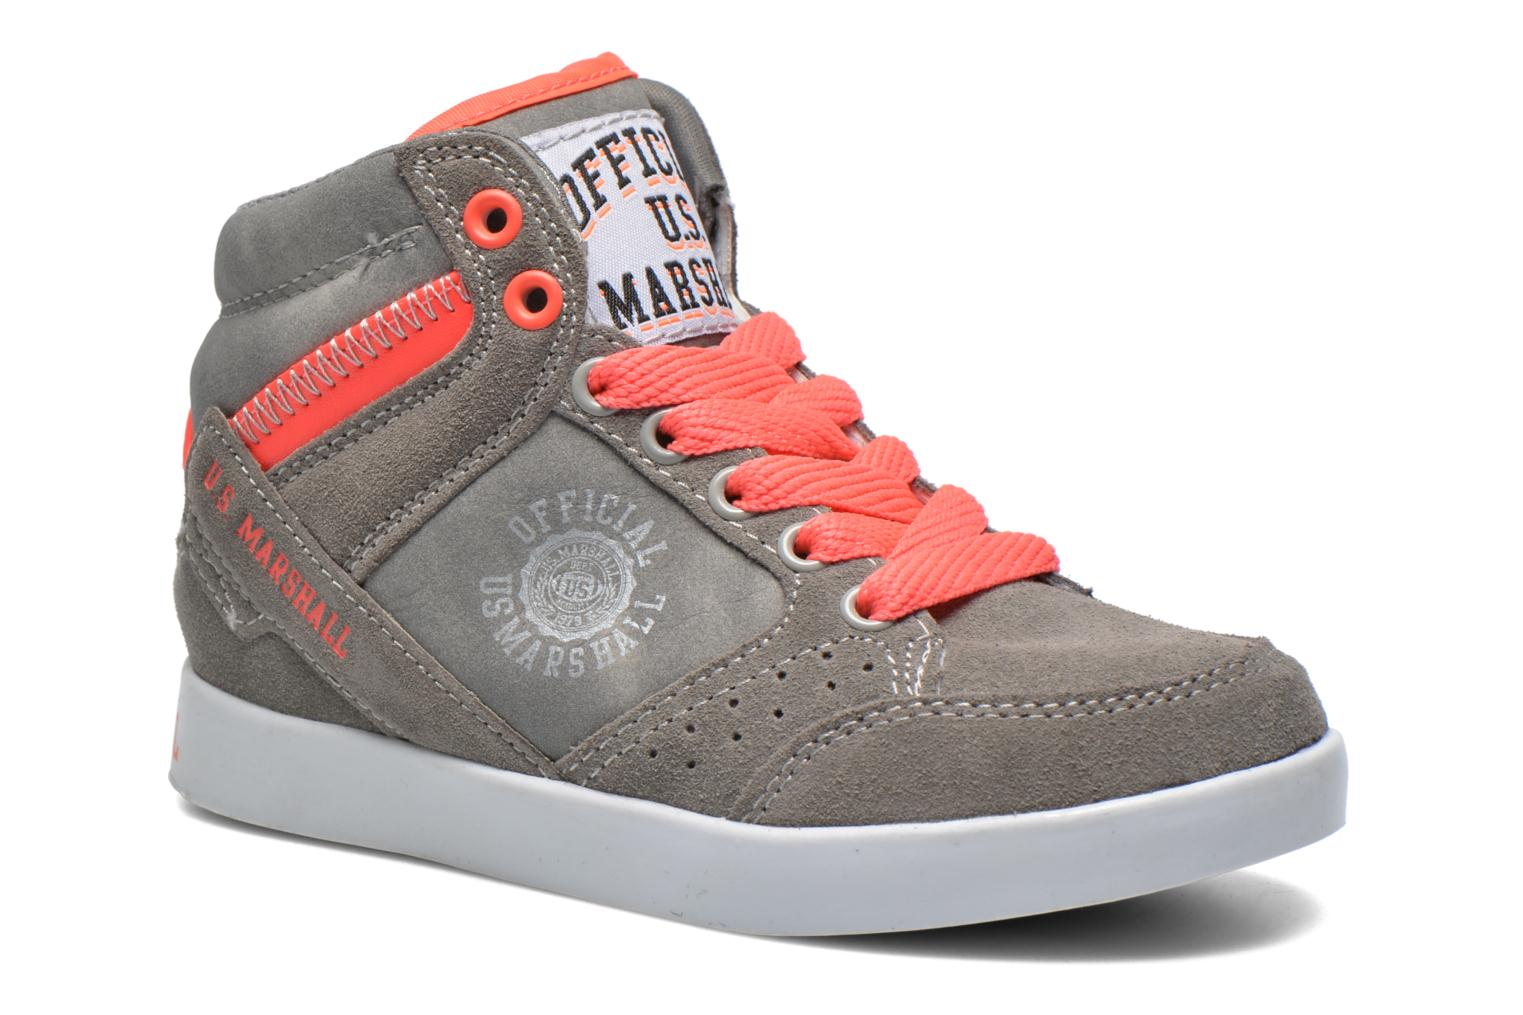 Baskets US Marshall Datacha Kids Gris vue détail/paire